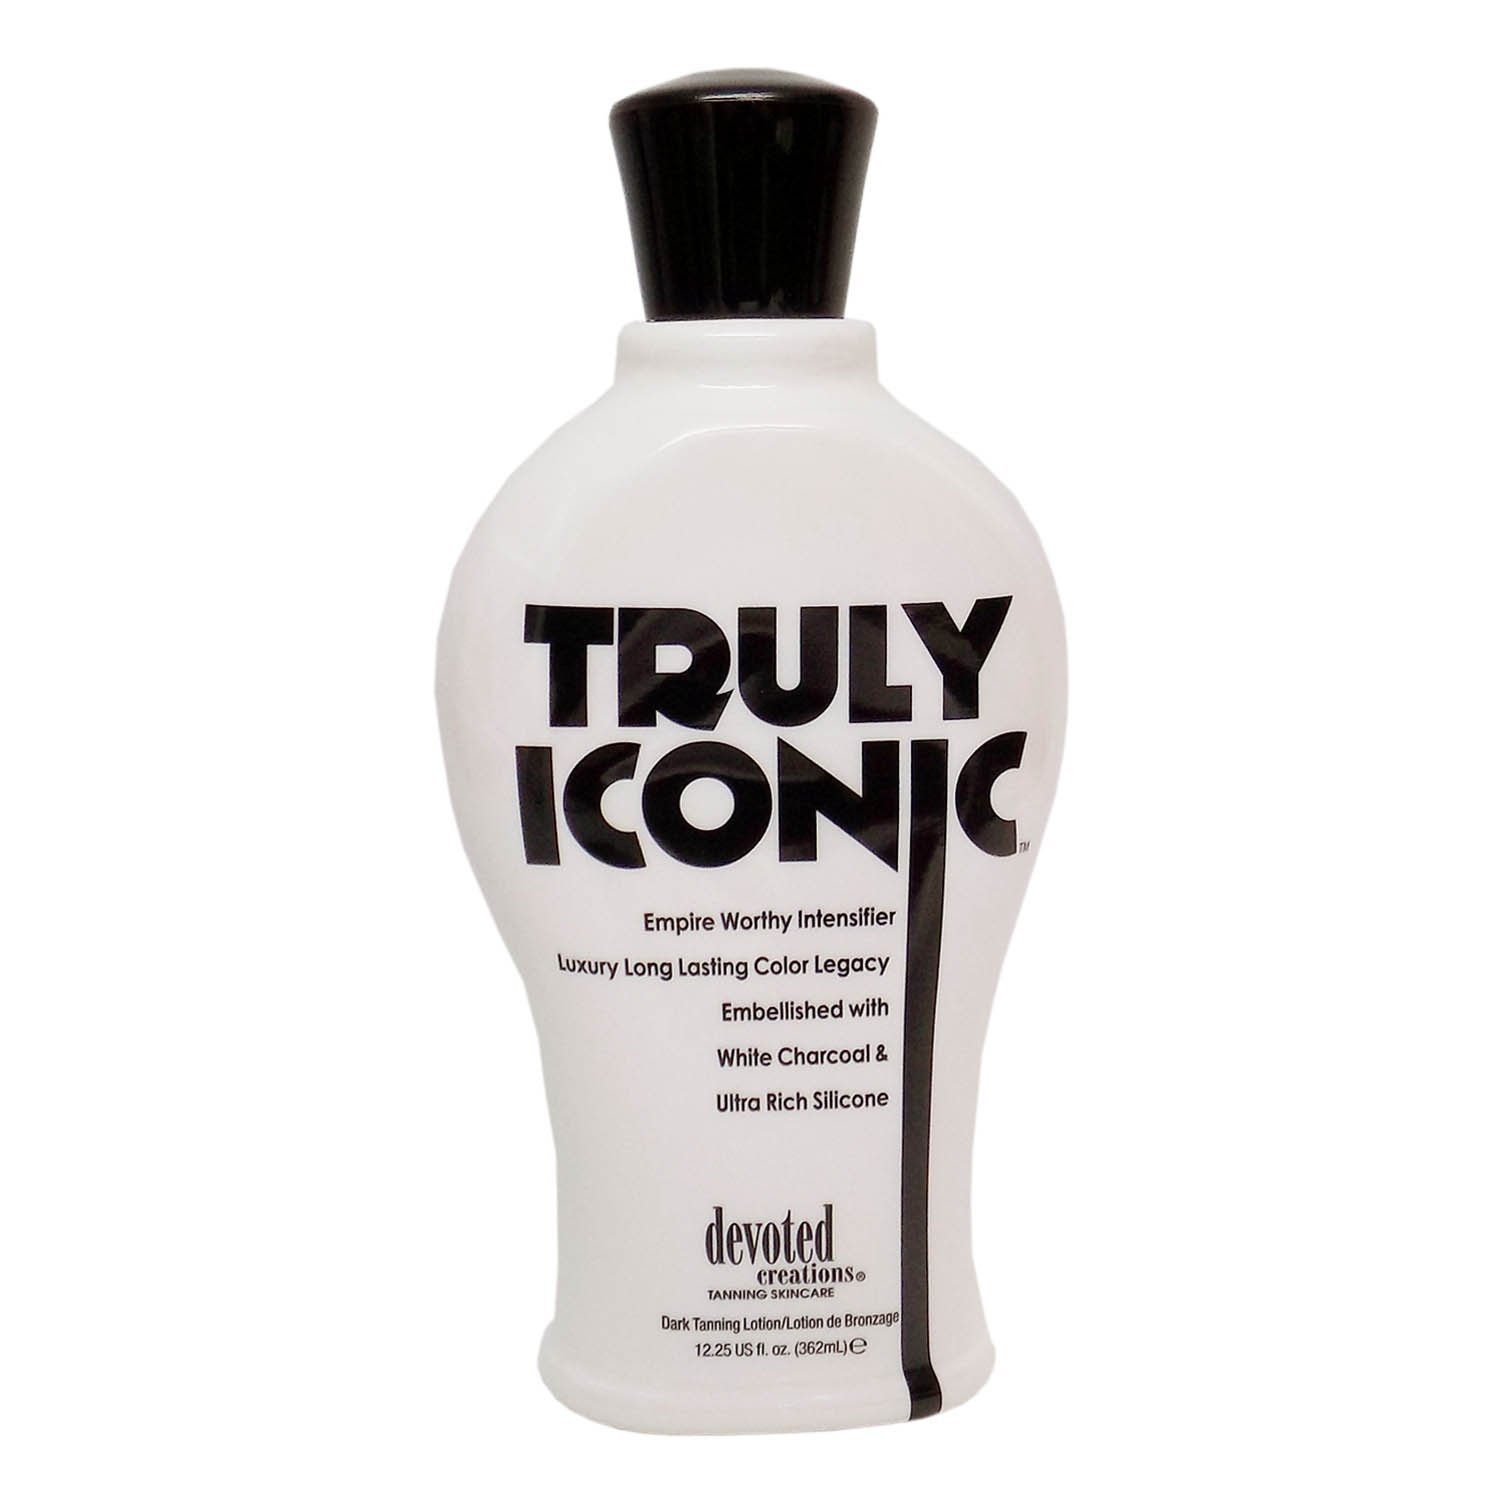 Devoted Creations Truly Iconic Intensifier Tanning Lotion 12.25 oz by Devoted Creations